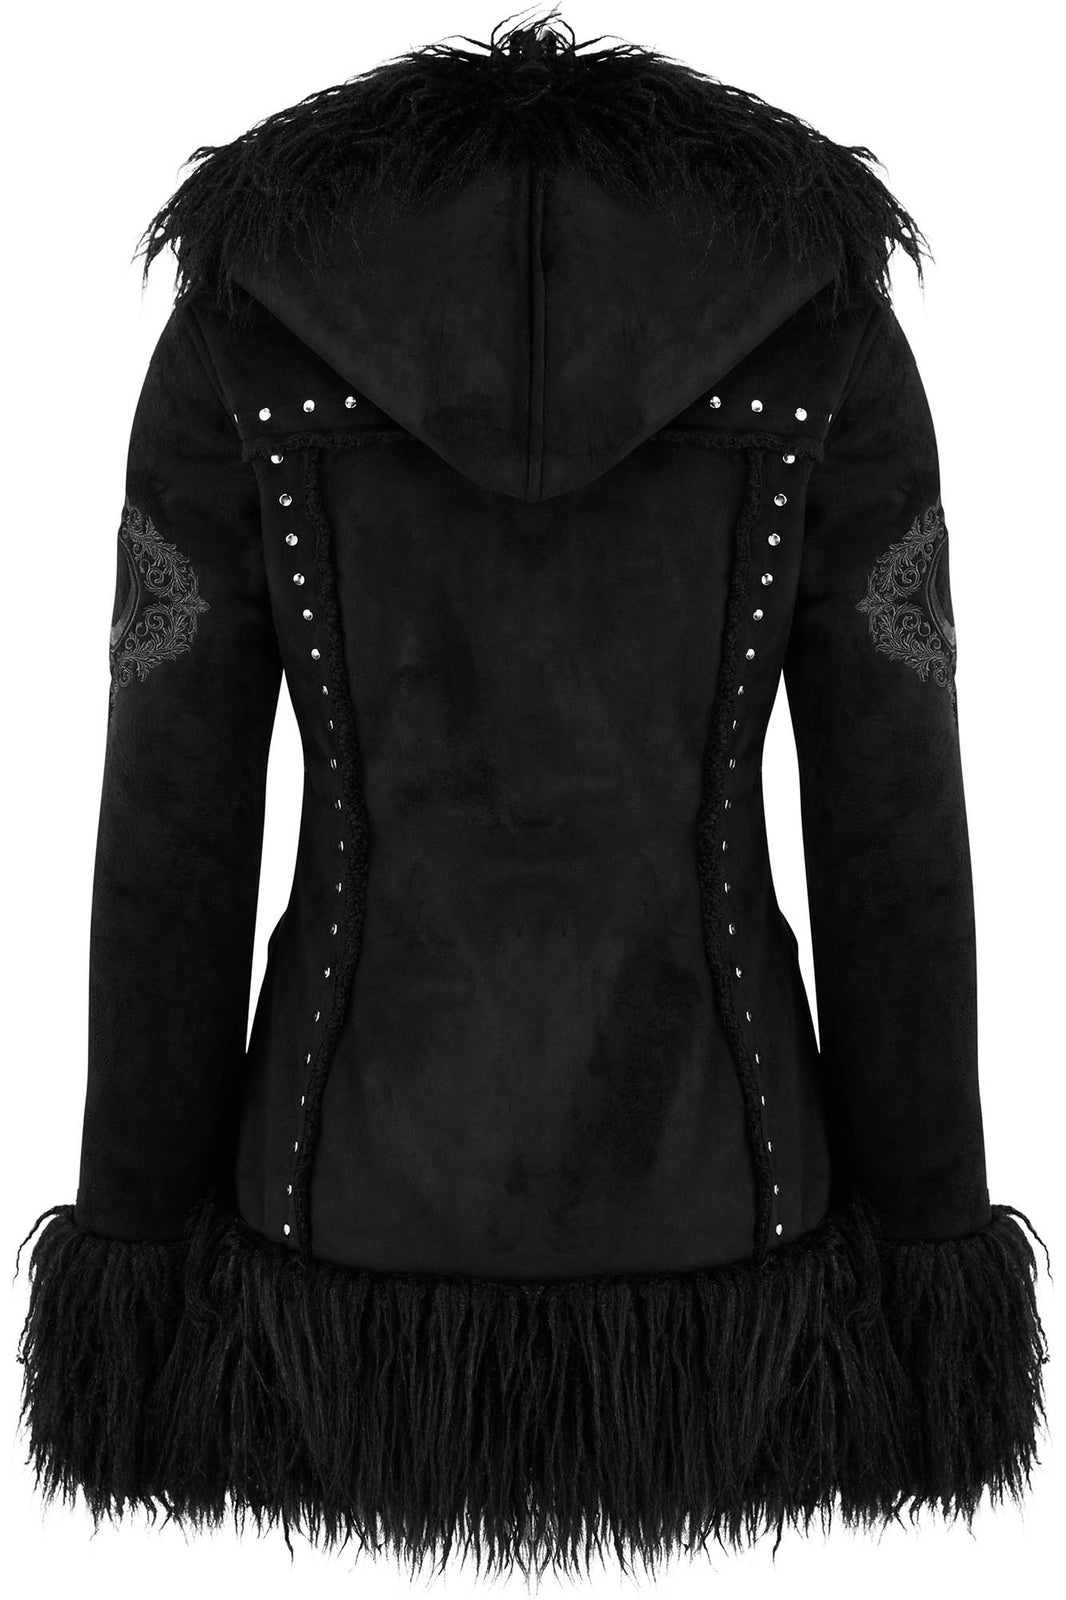 Salem City Shearling Coat